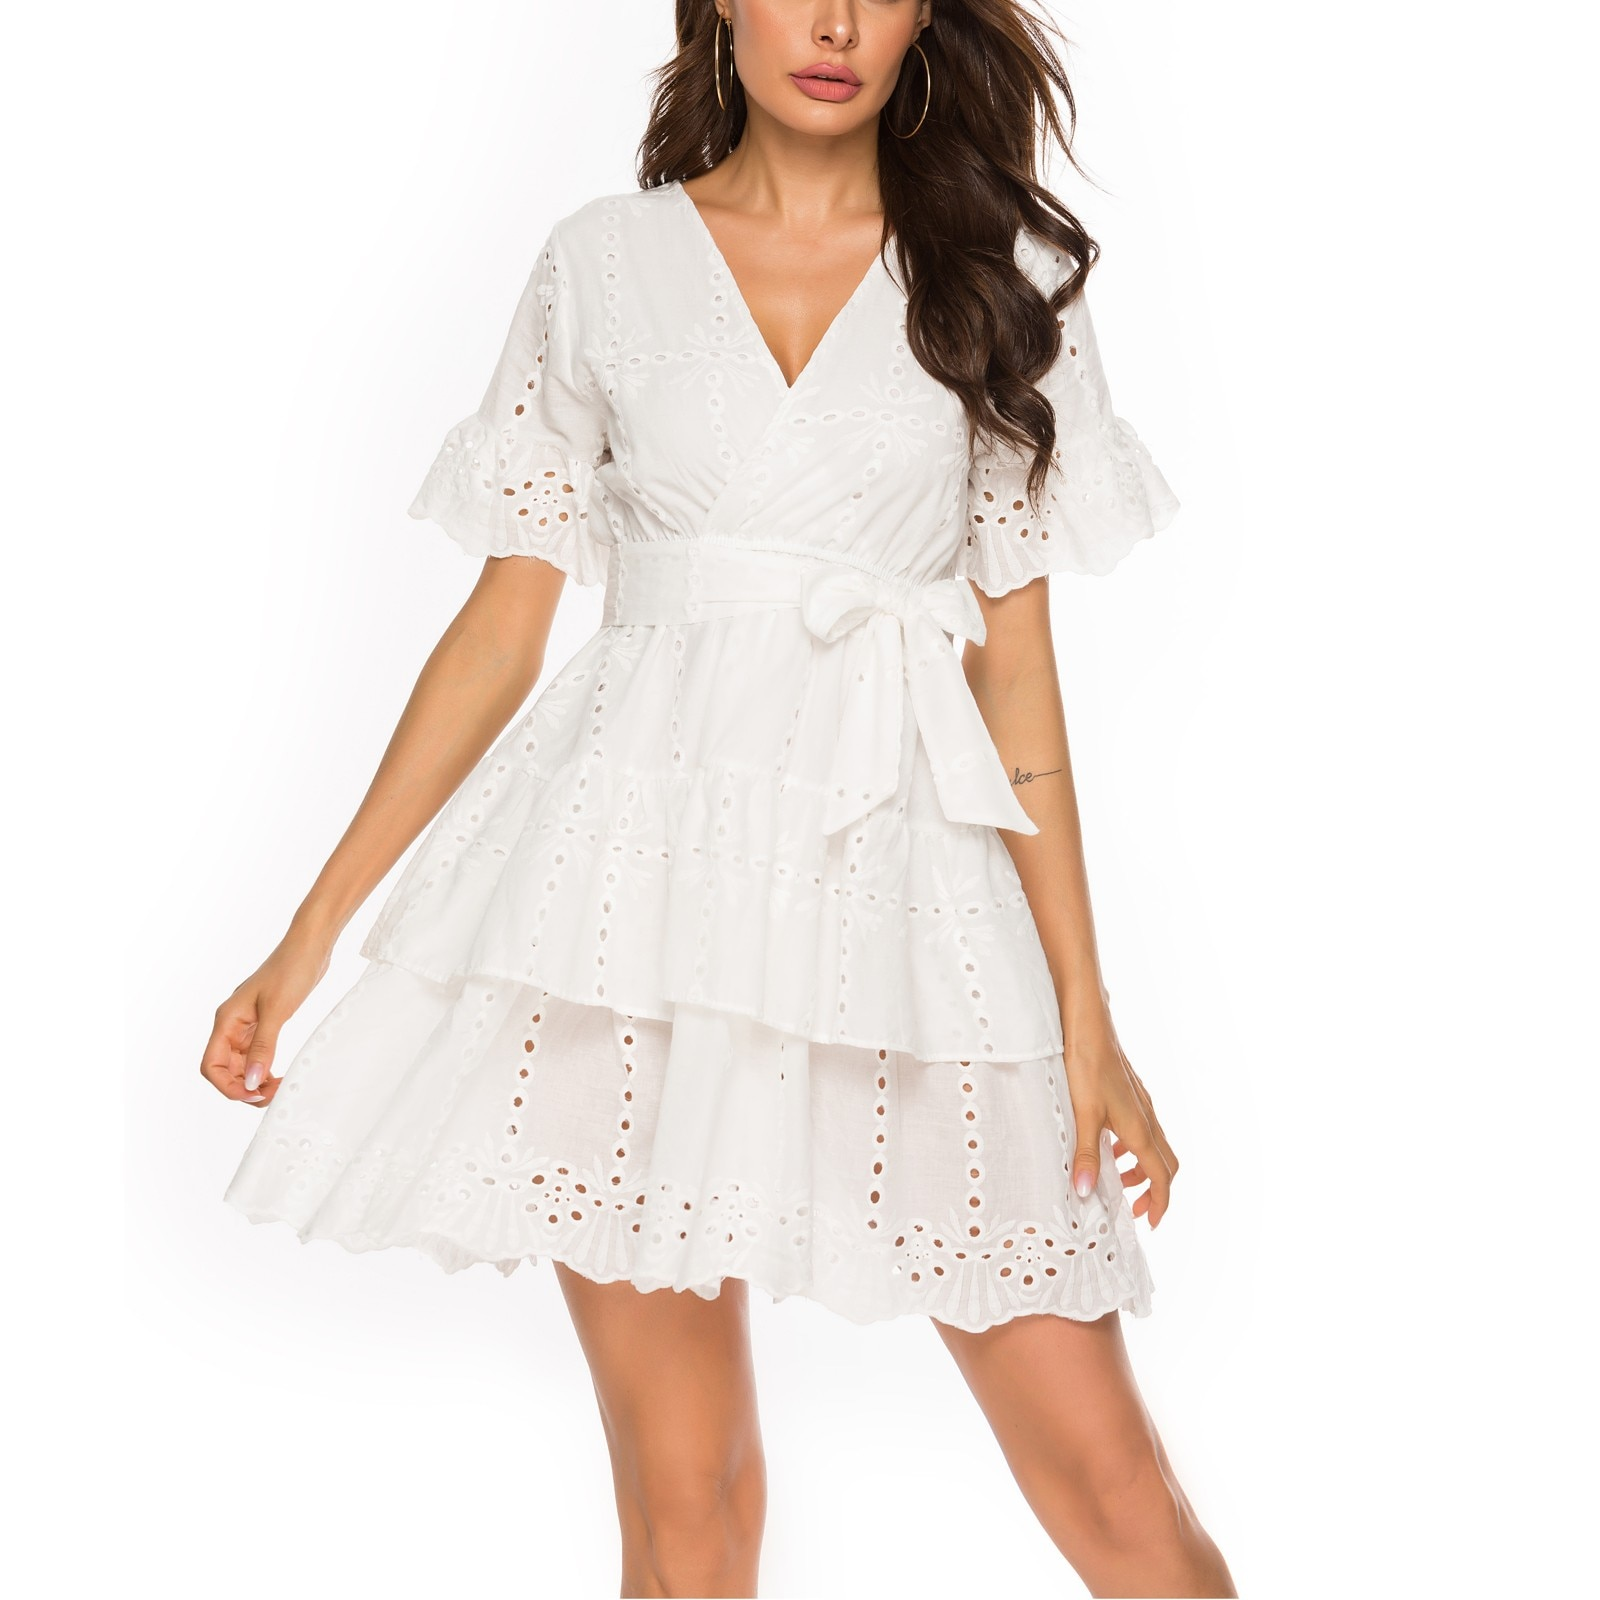 40# Lace Embroidery Dress Short Sleeve V-neck Hollow Out Mini Dress Holiday Beach Ruffle Dresses For Women 2021 Elegant Vestidos